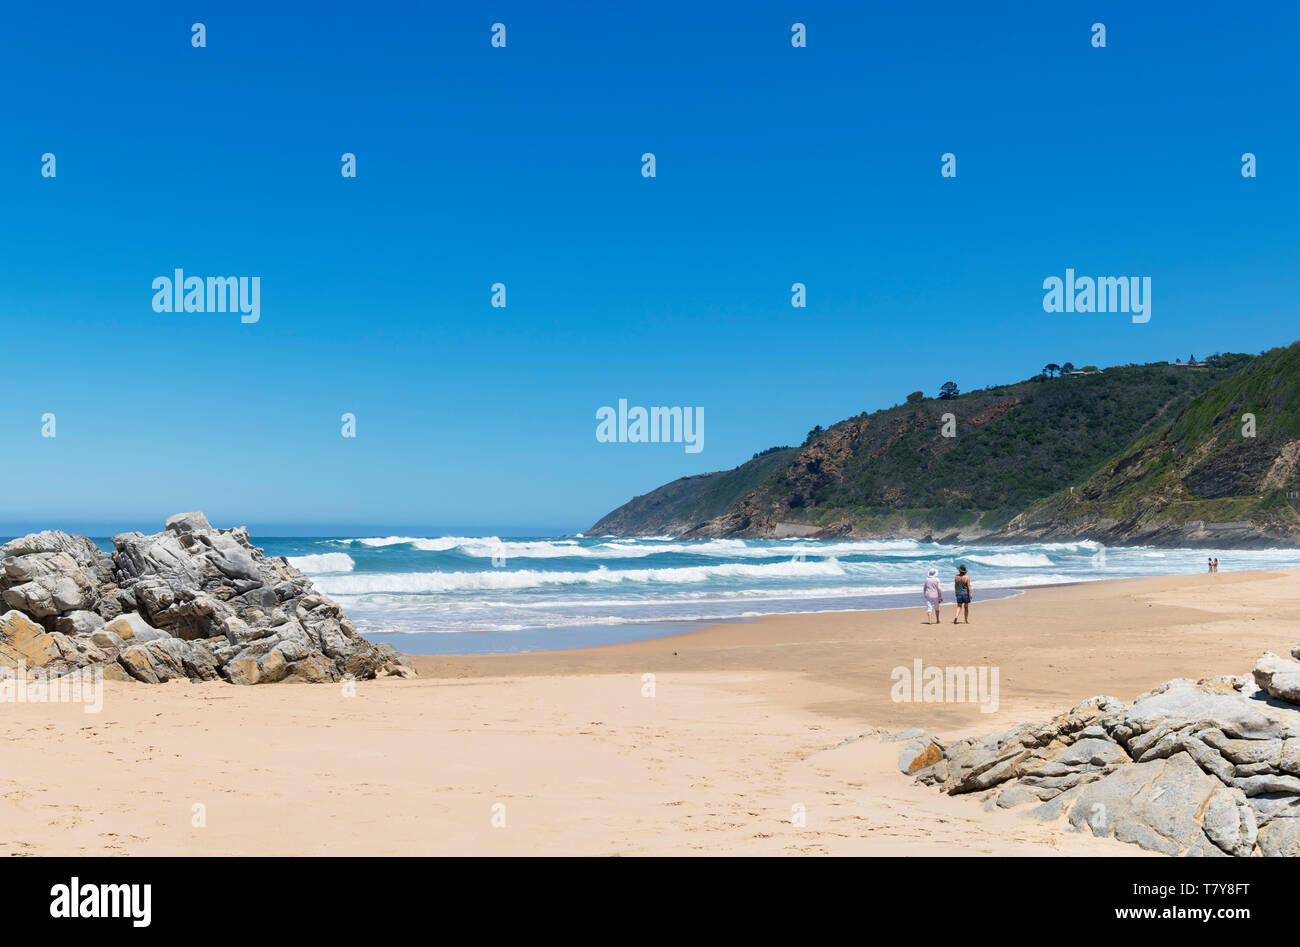 The beach at Wilderness, Garden Route, Western Cape, South Africa Stock Photo